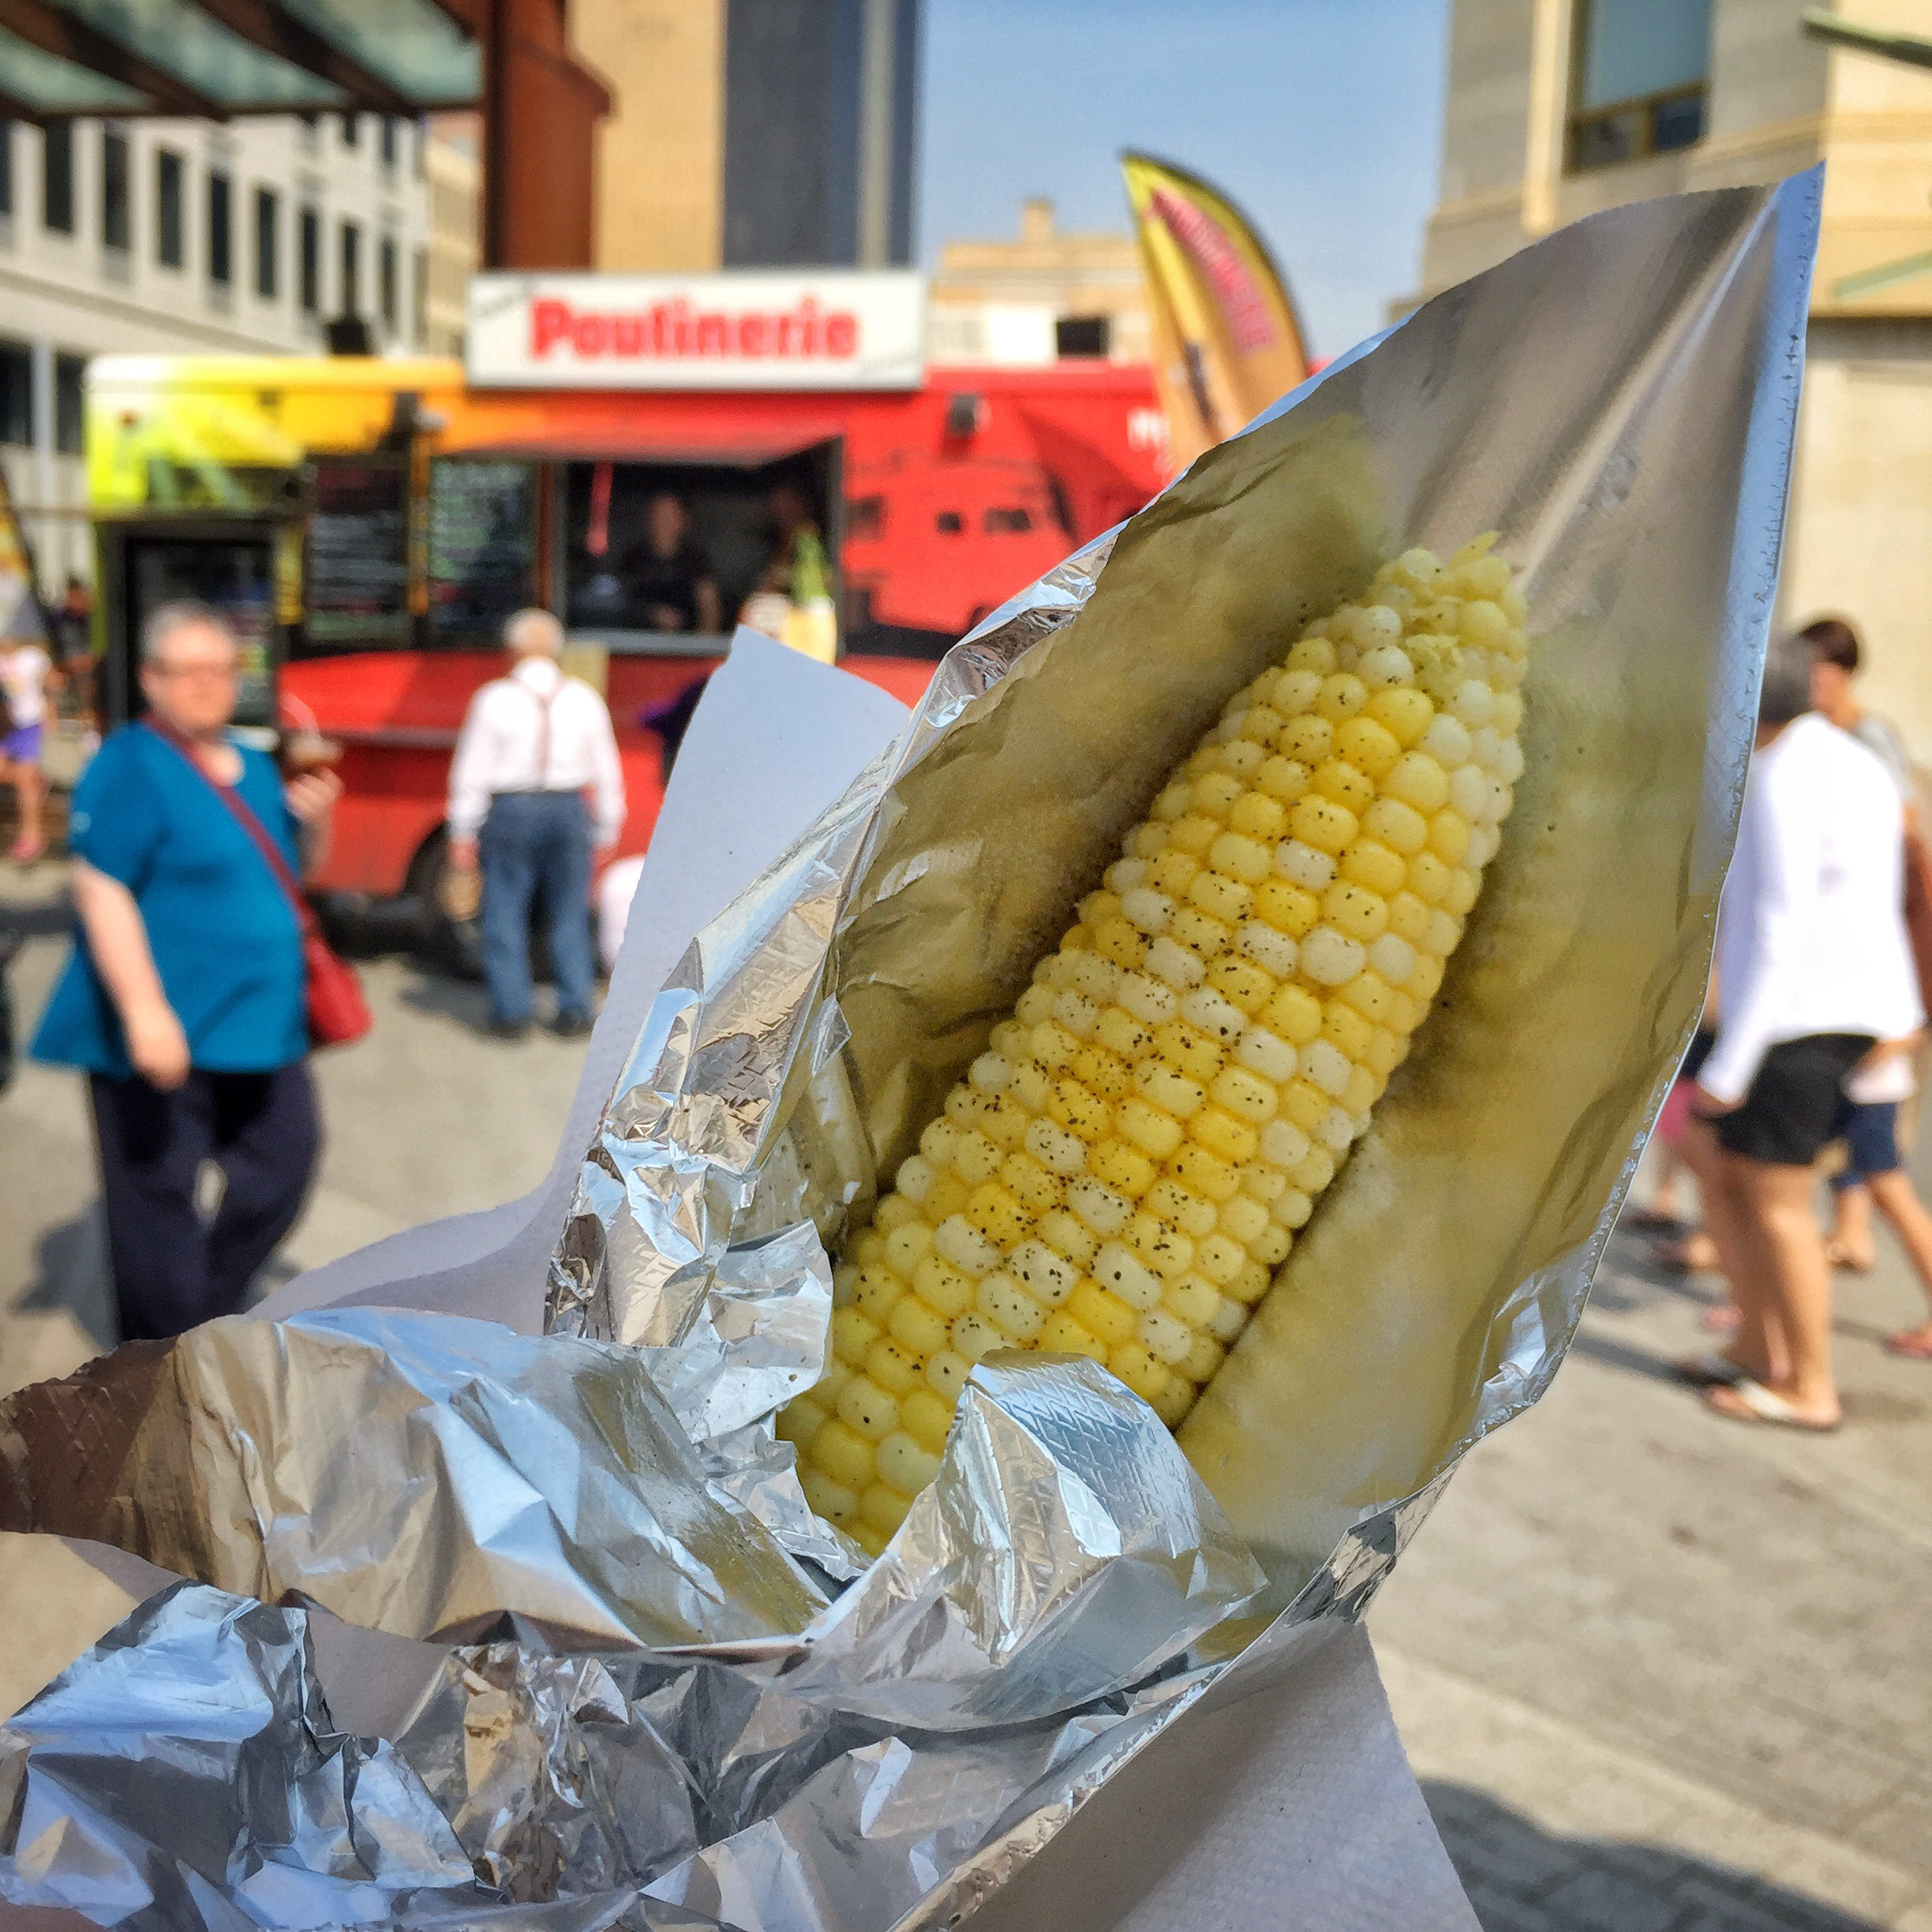 Street Beets September 2nd, 2015: Cookies, Corn, Vendor Map, & Hello September! - Image 2